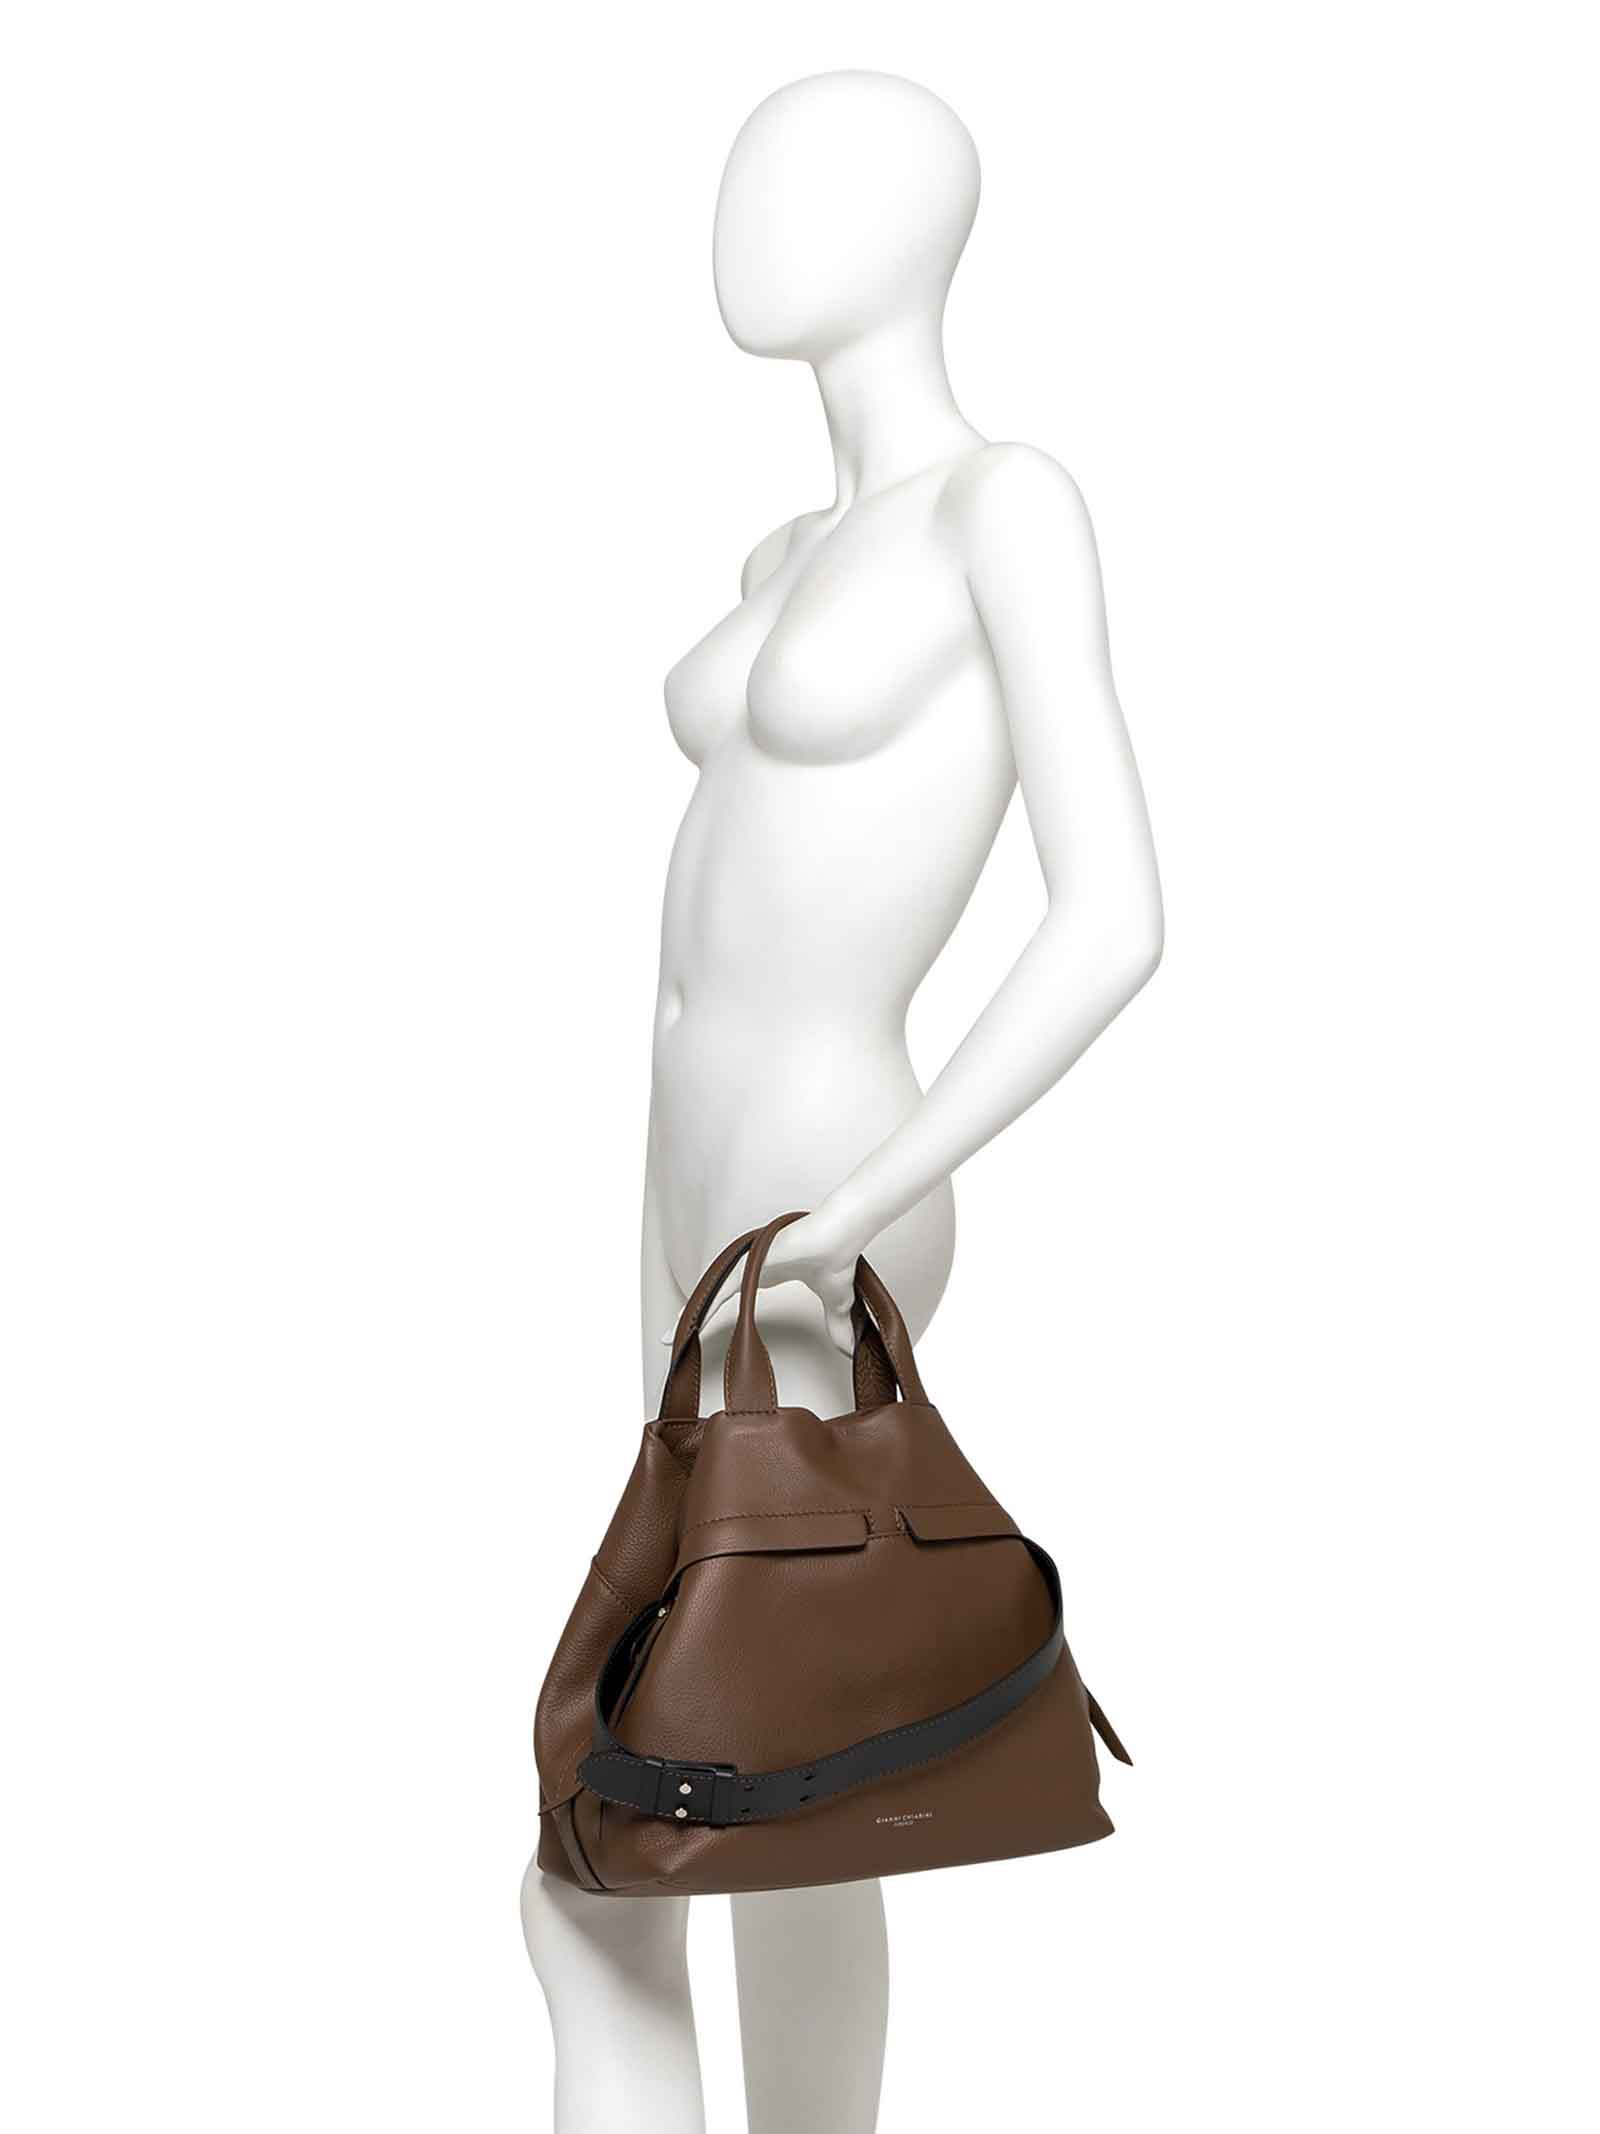 Women's Cross-body Bag Duna In Taupe Leather And Black Suede With Double Leather Handles And Adjustable And Detachable Cross-body leather Strap Gianni Chiarini | Bags and backpacks | BS82324176